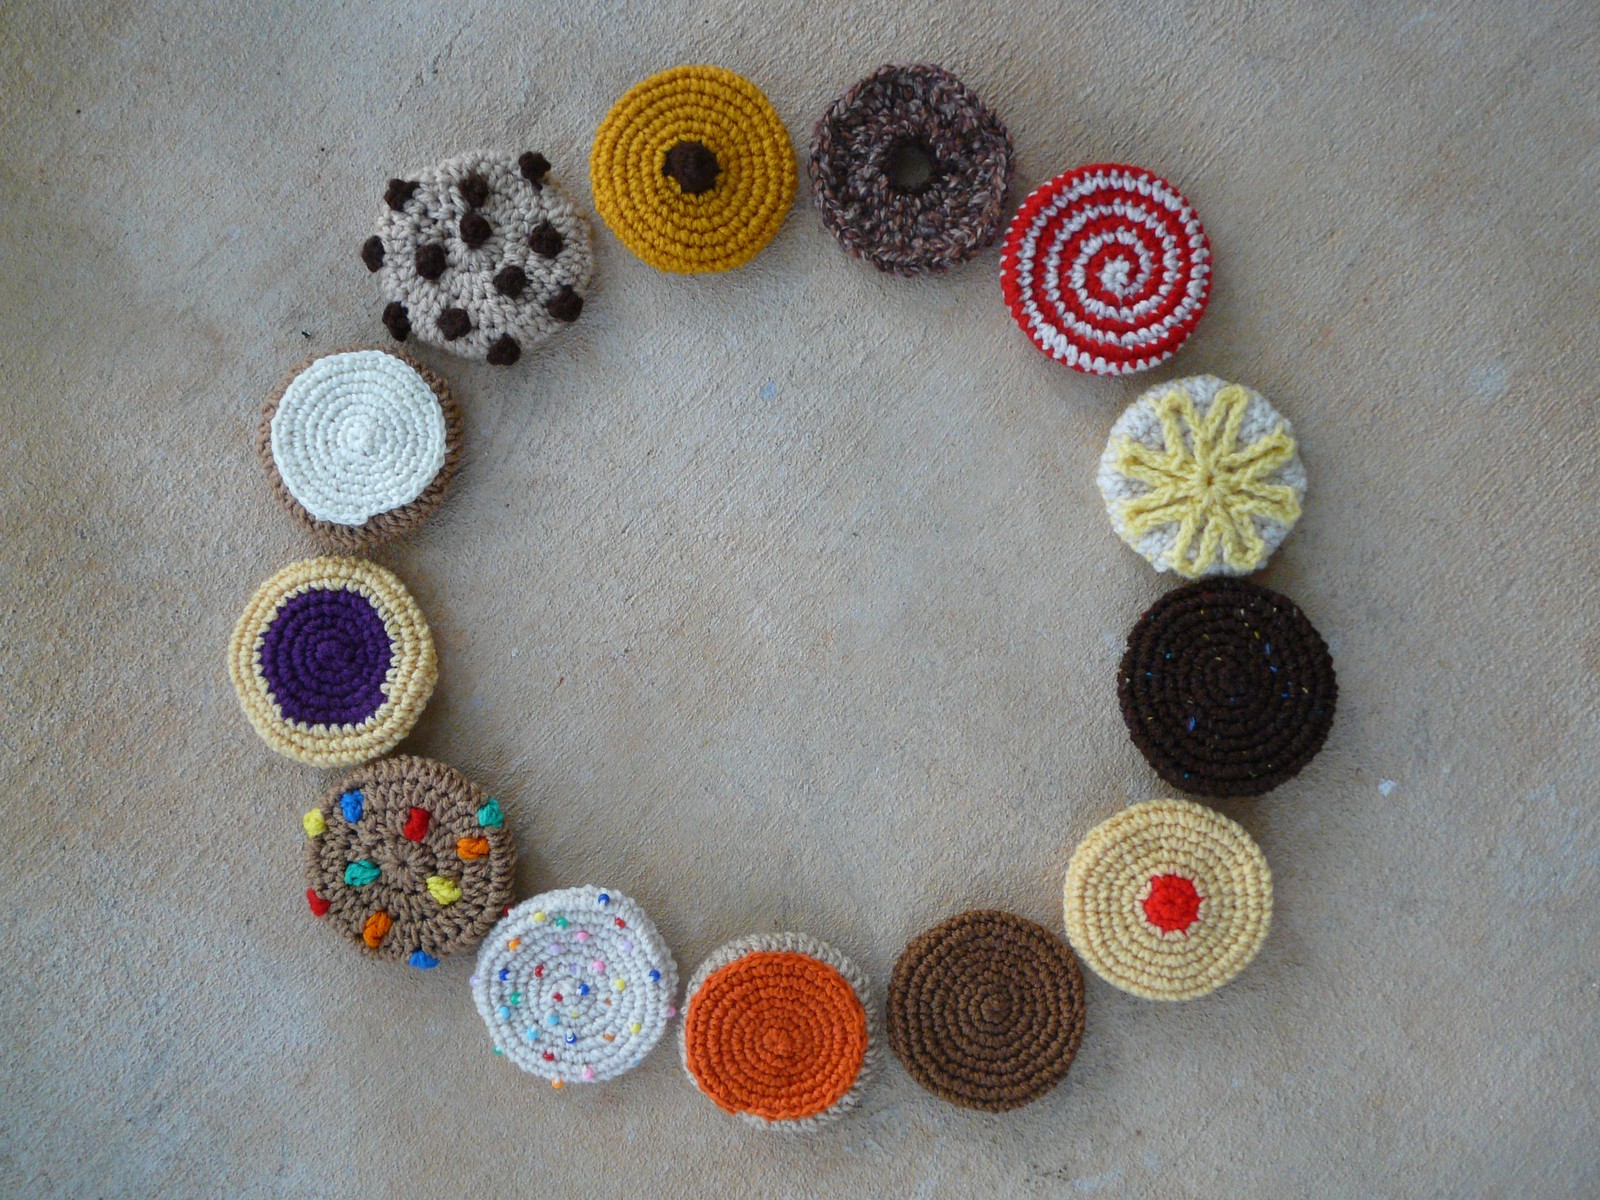 A baker's dozen of crochet cookies